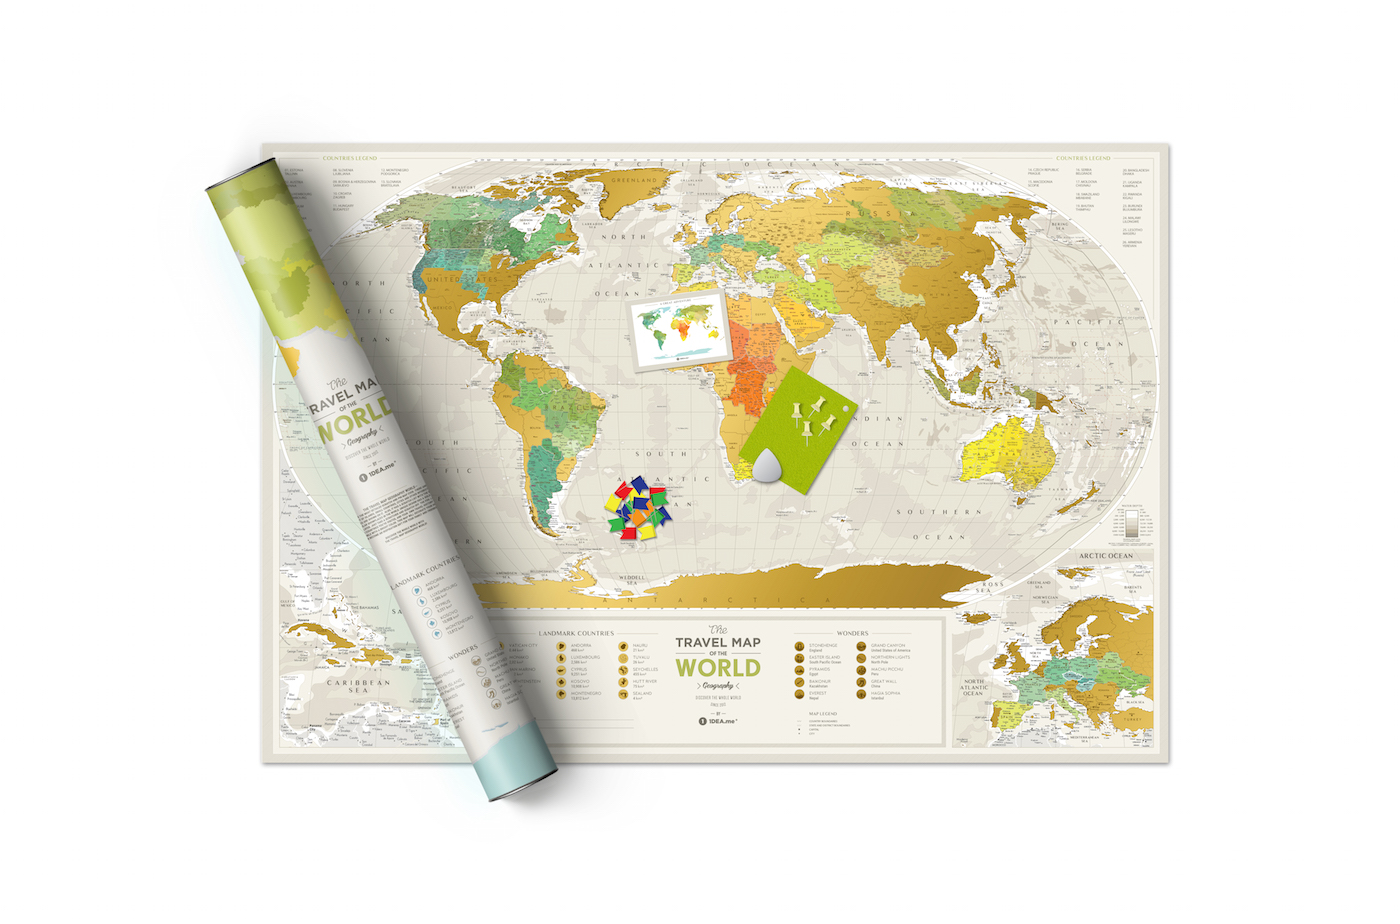 Rubbelkarte Welt Travel Map Geography World Rubbel Karte Karten